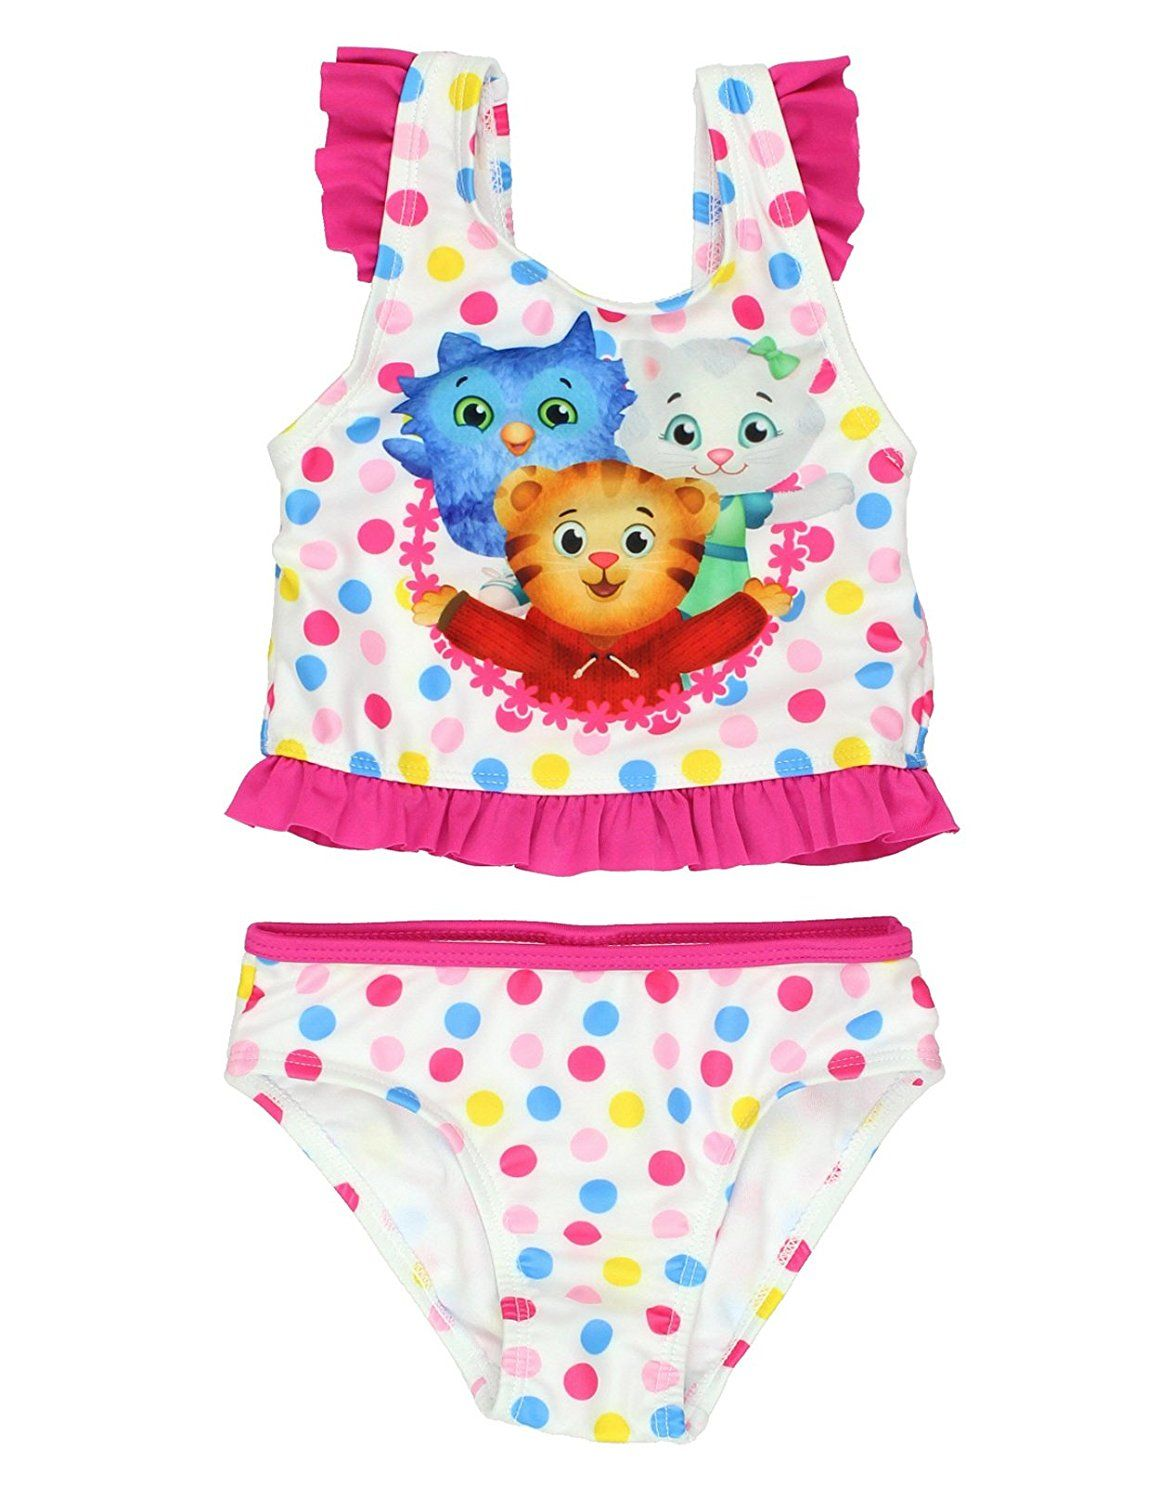 f210dc85816e Amazon.com: Daniel Tiger's Neighborhood Toddler Girls' Swimsuit: Clothing